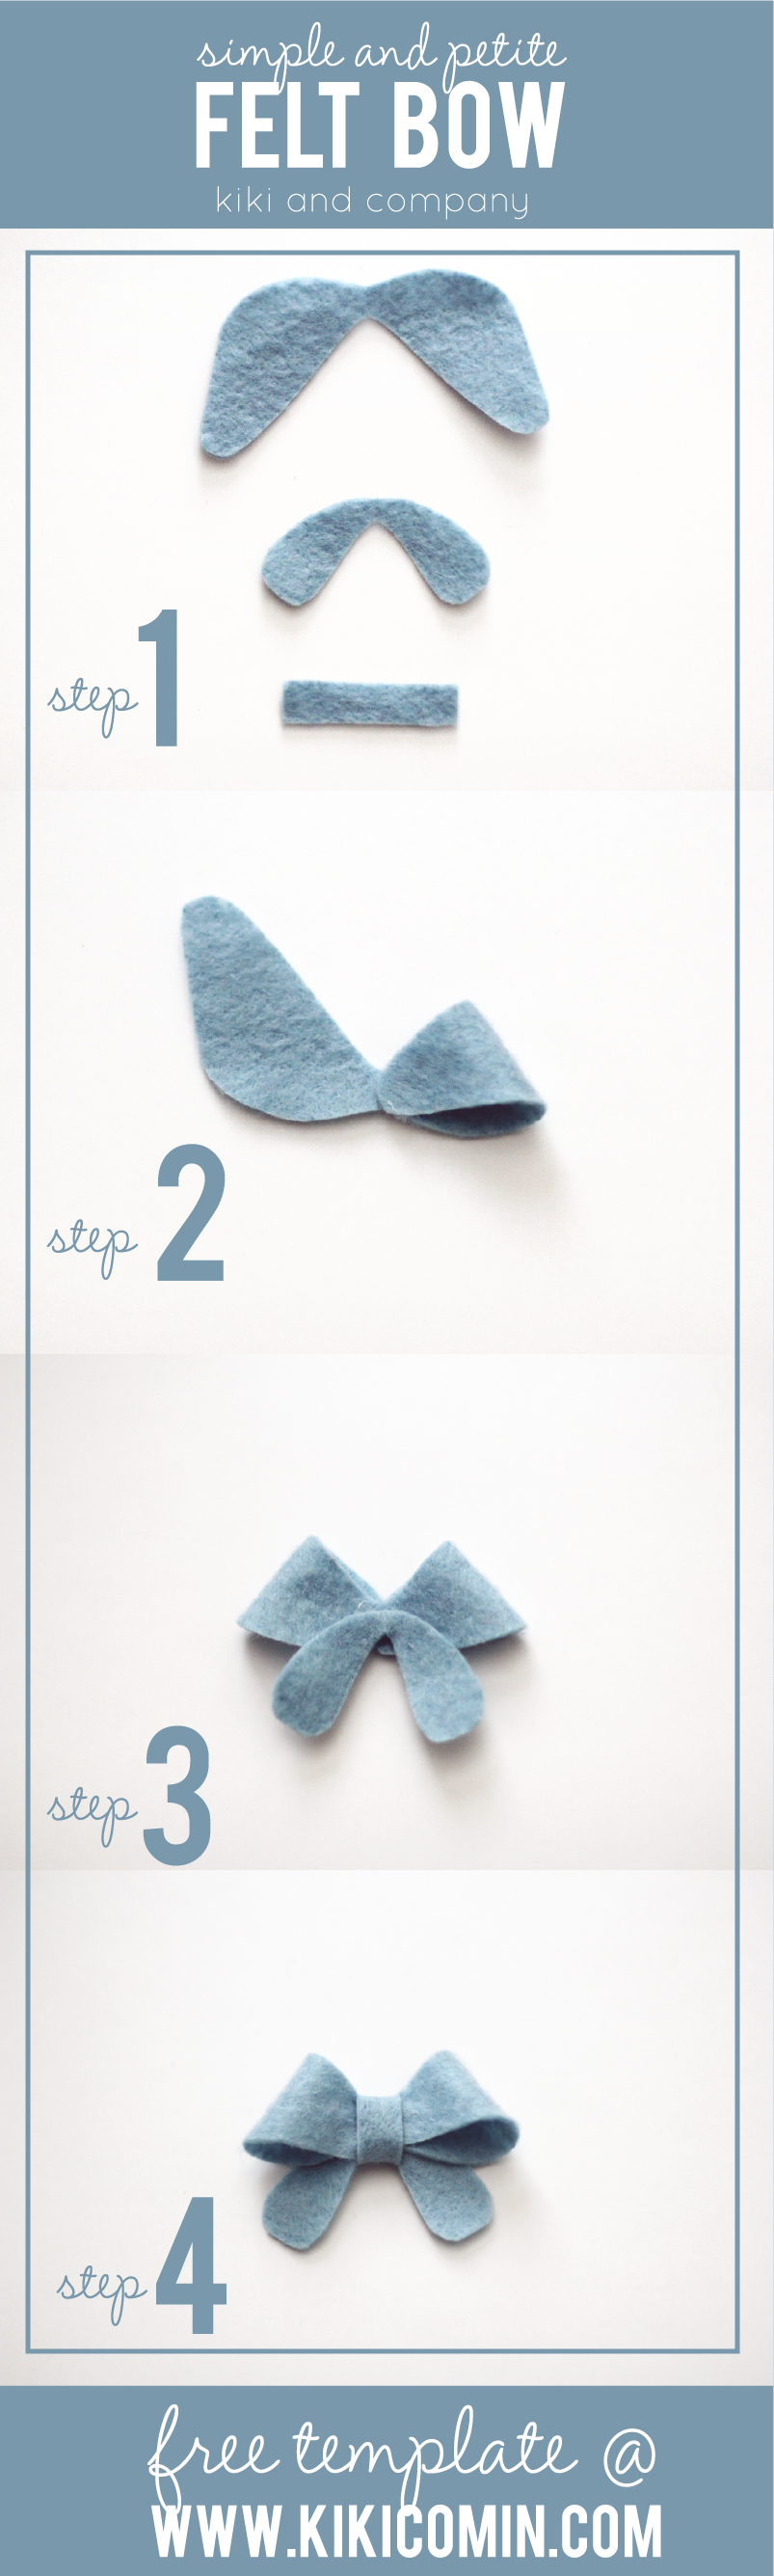 Simple and petite felt bow free template kiki company step 1 using template pronofoot35fo Image collections